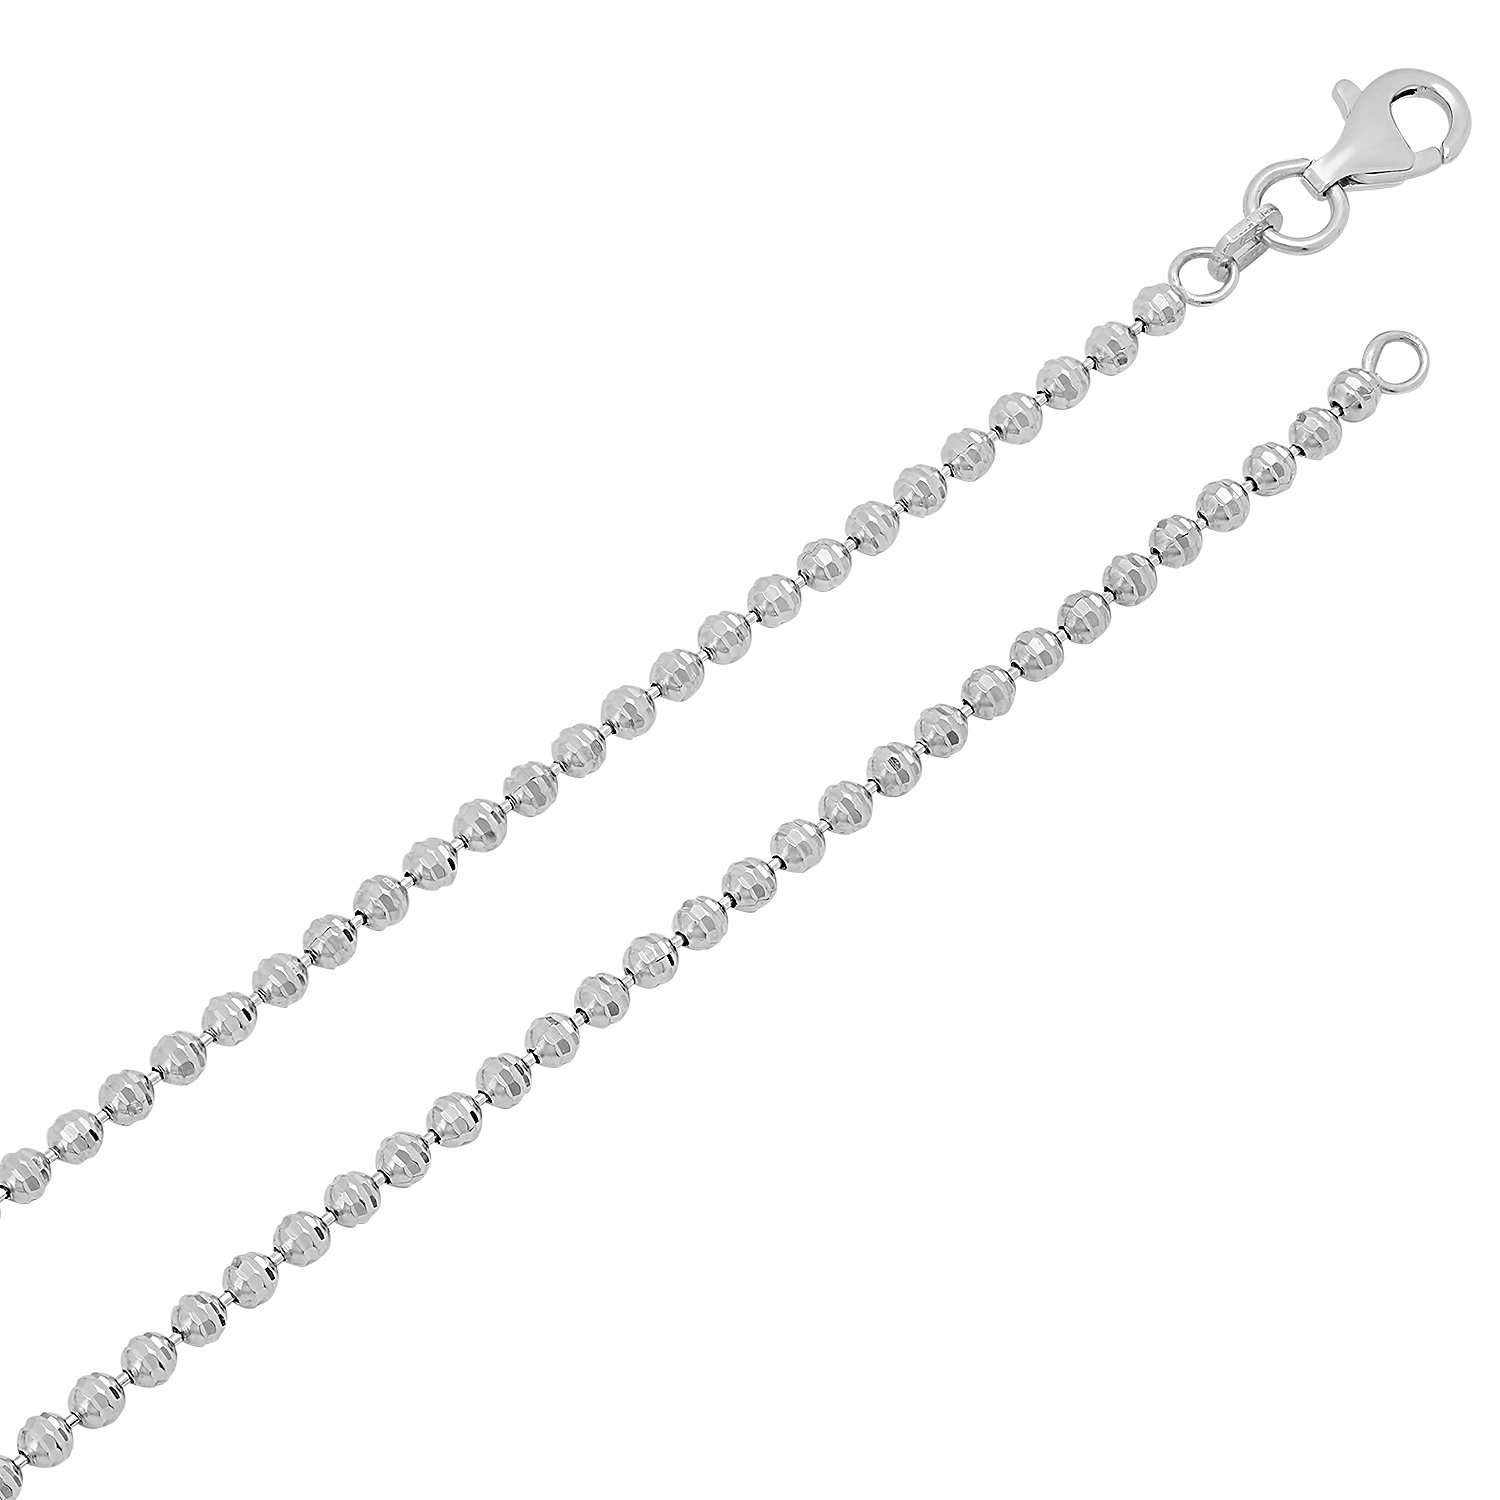 161820 Polishing Cloth 1.8mm Rhodium Plated 925 Sterling Silver Jianzi Beaded Chain Necklace